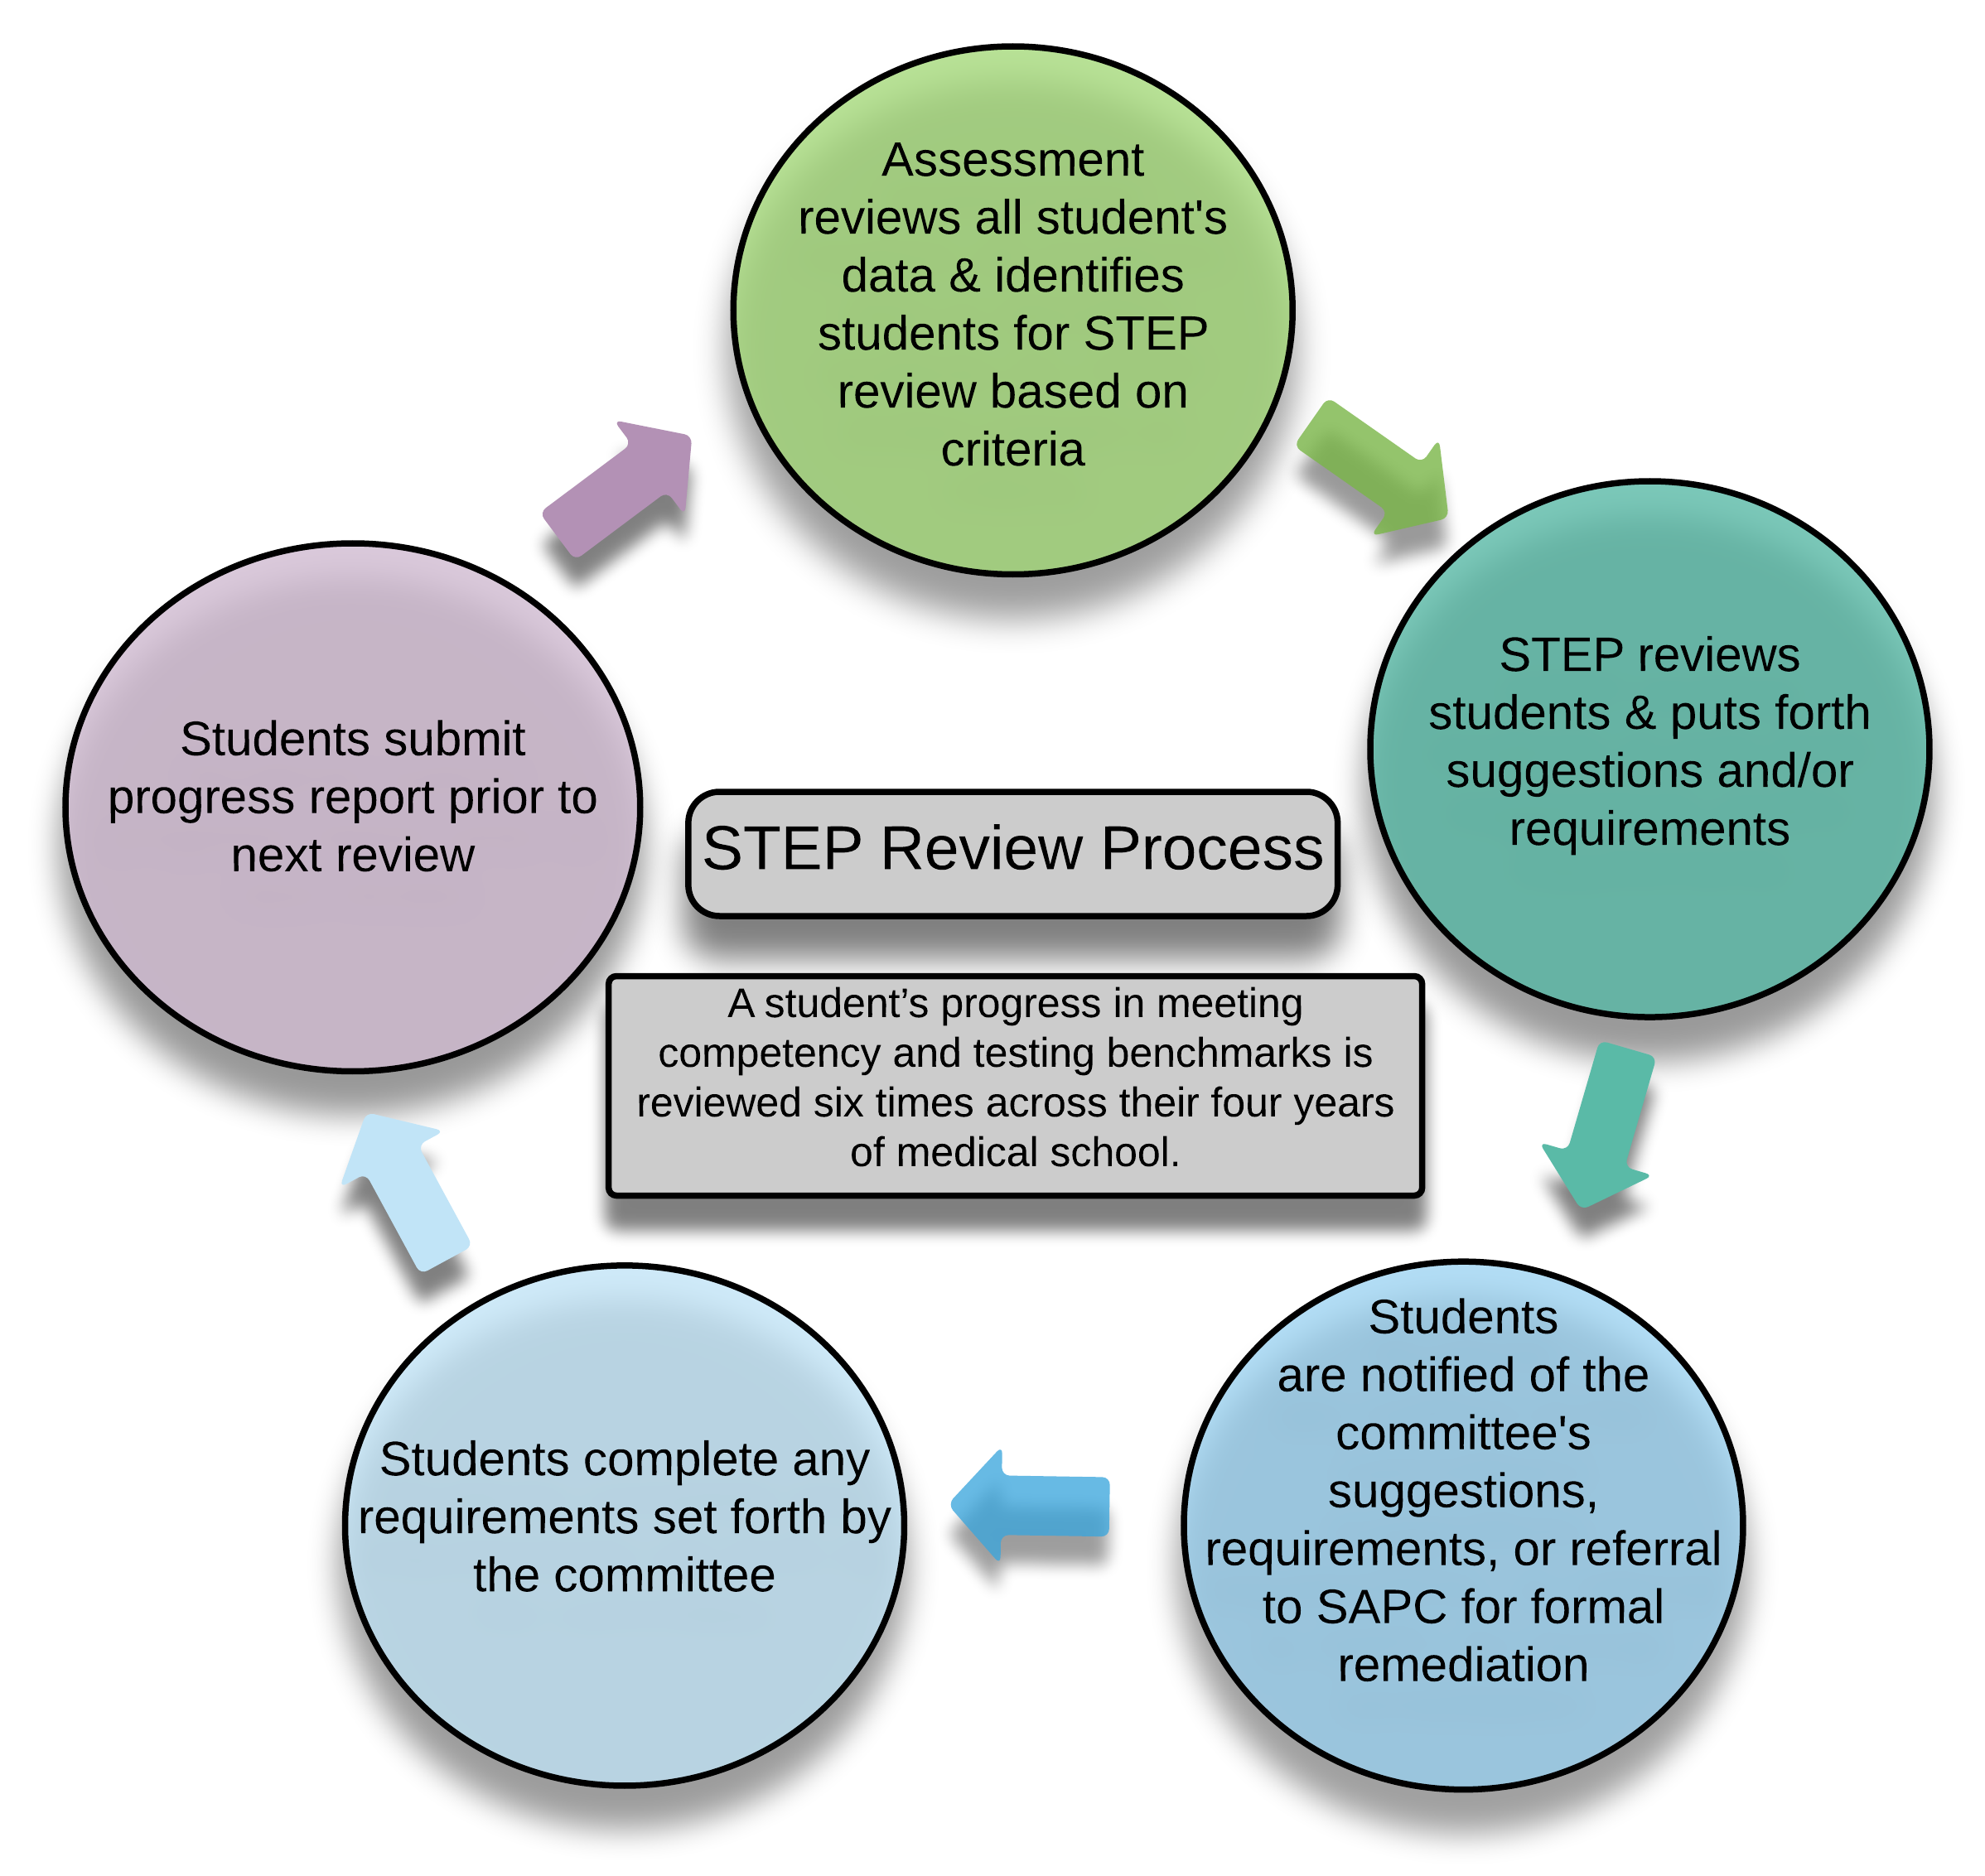 STEP Review Process